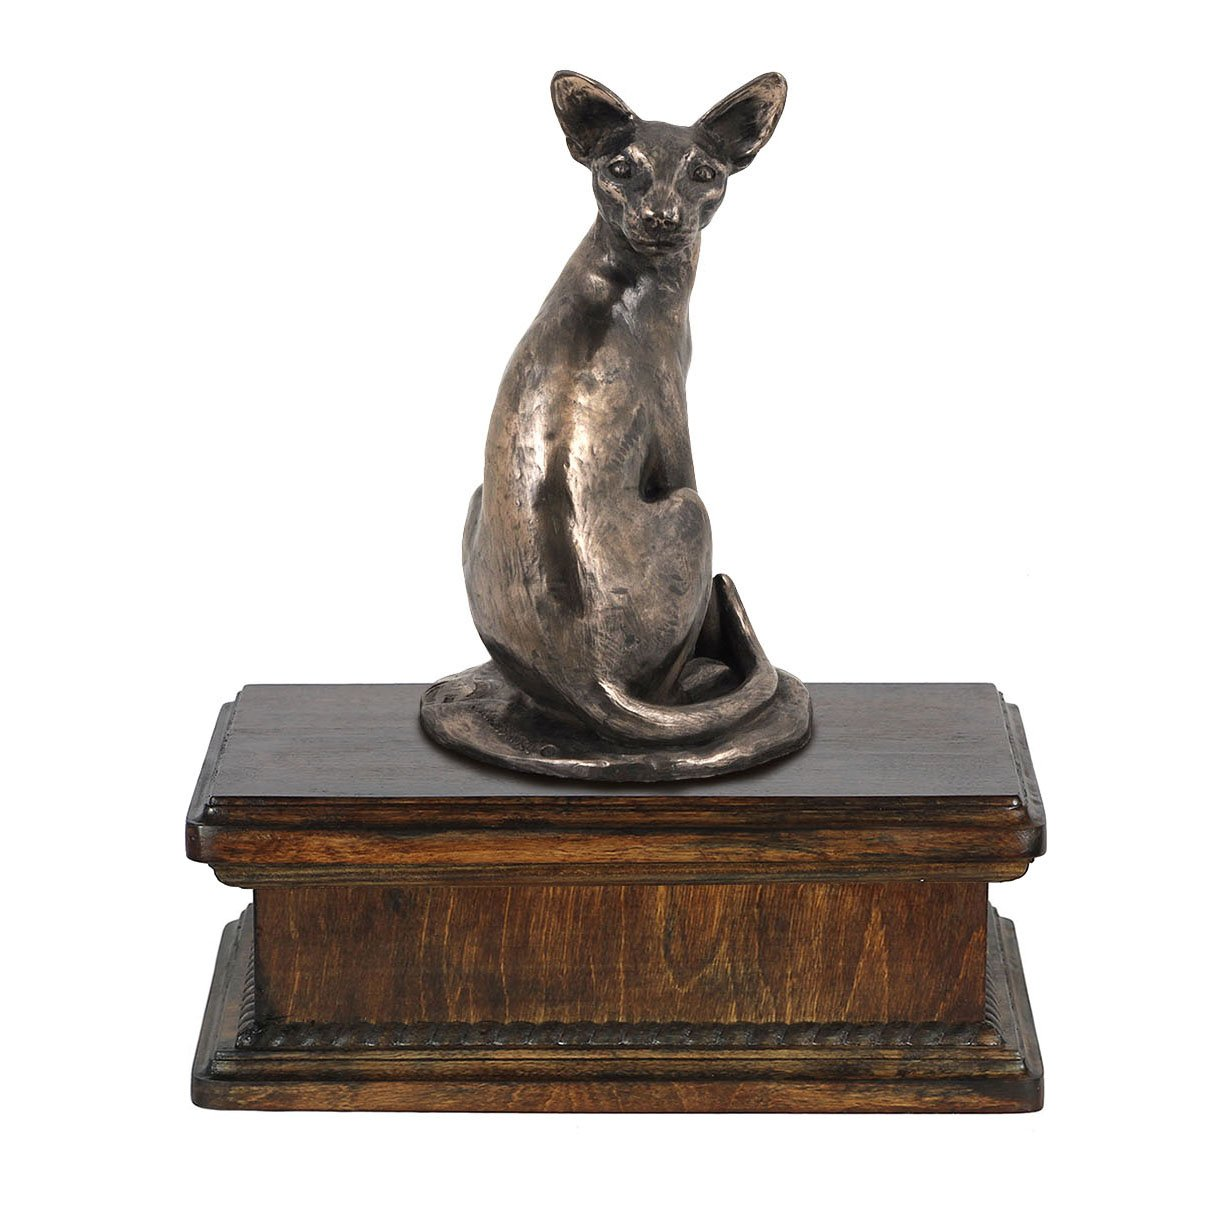 Egyptian Cat, memorial, urn for cat's ashes, with a cat statue, exclusive, ArtDog